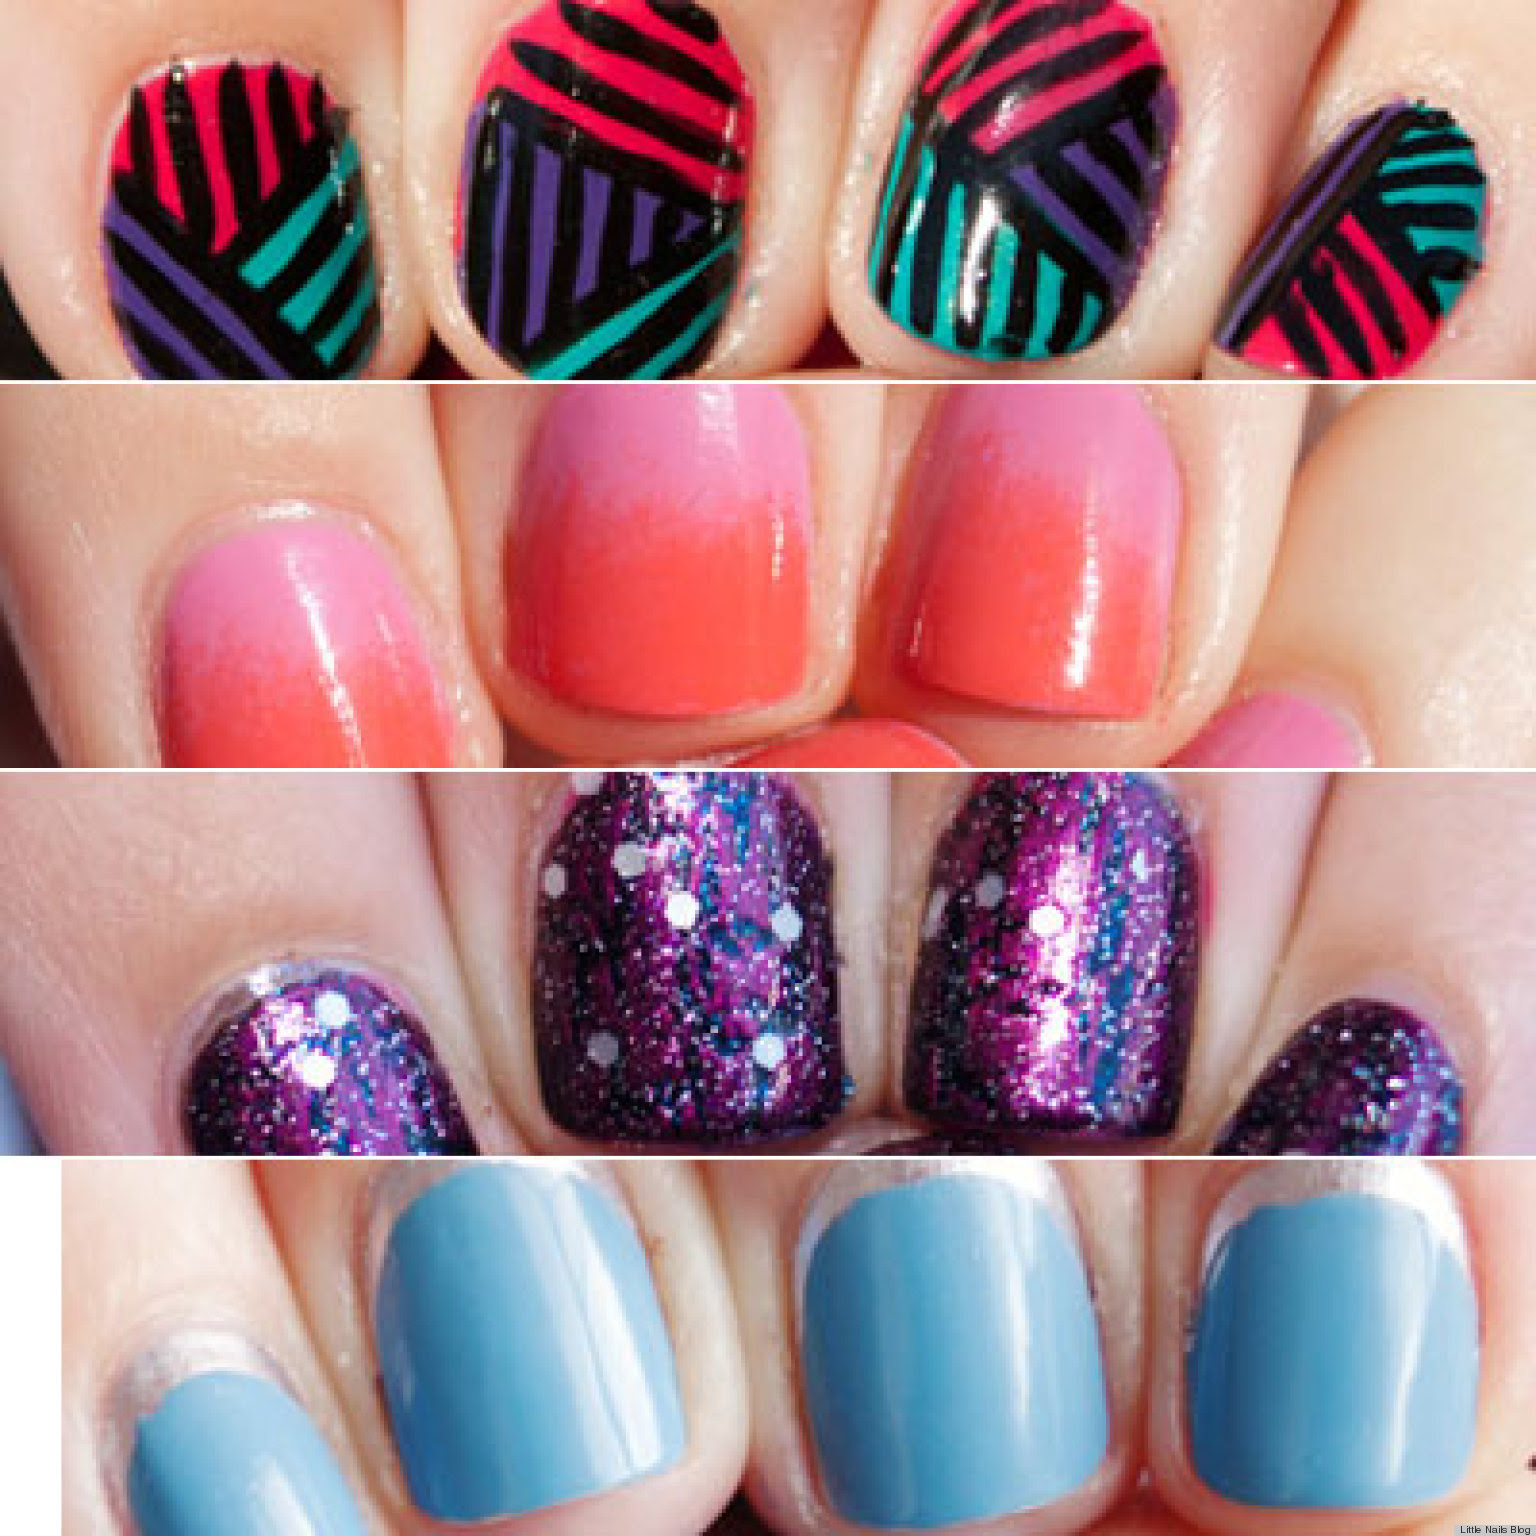 Do It Yourself Nail Designs: Do It Yourself Nail Designs Nail Designs 2014 Tumblr Step